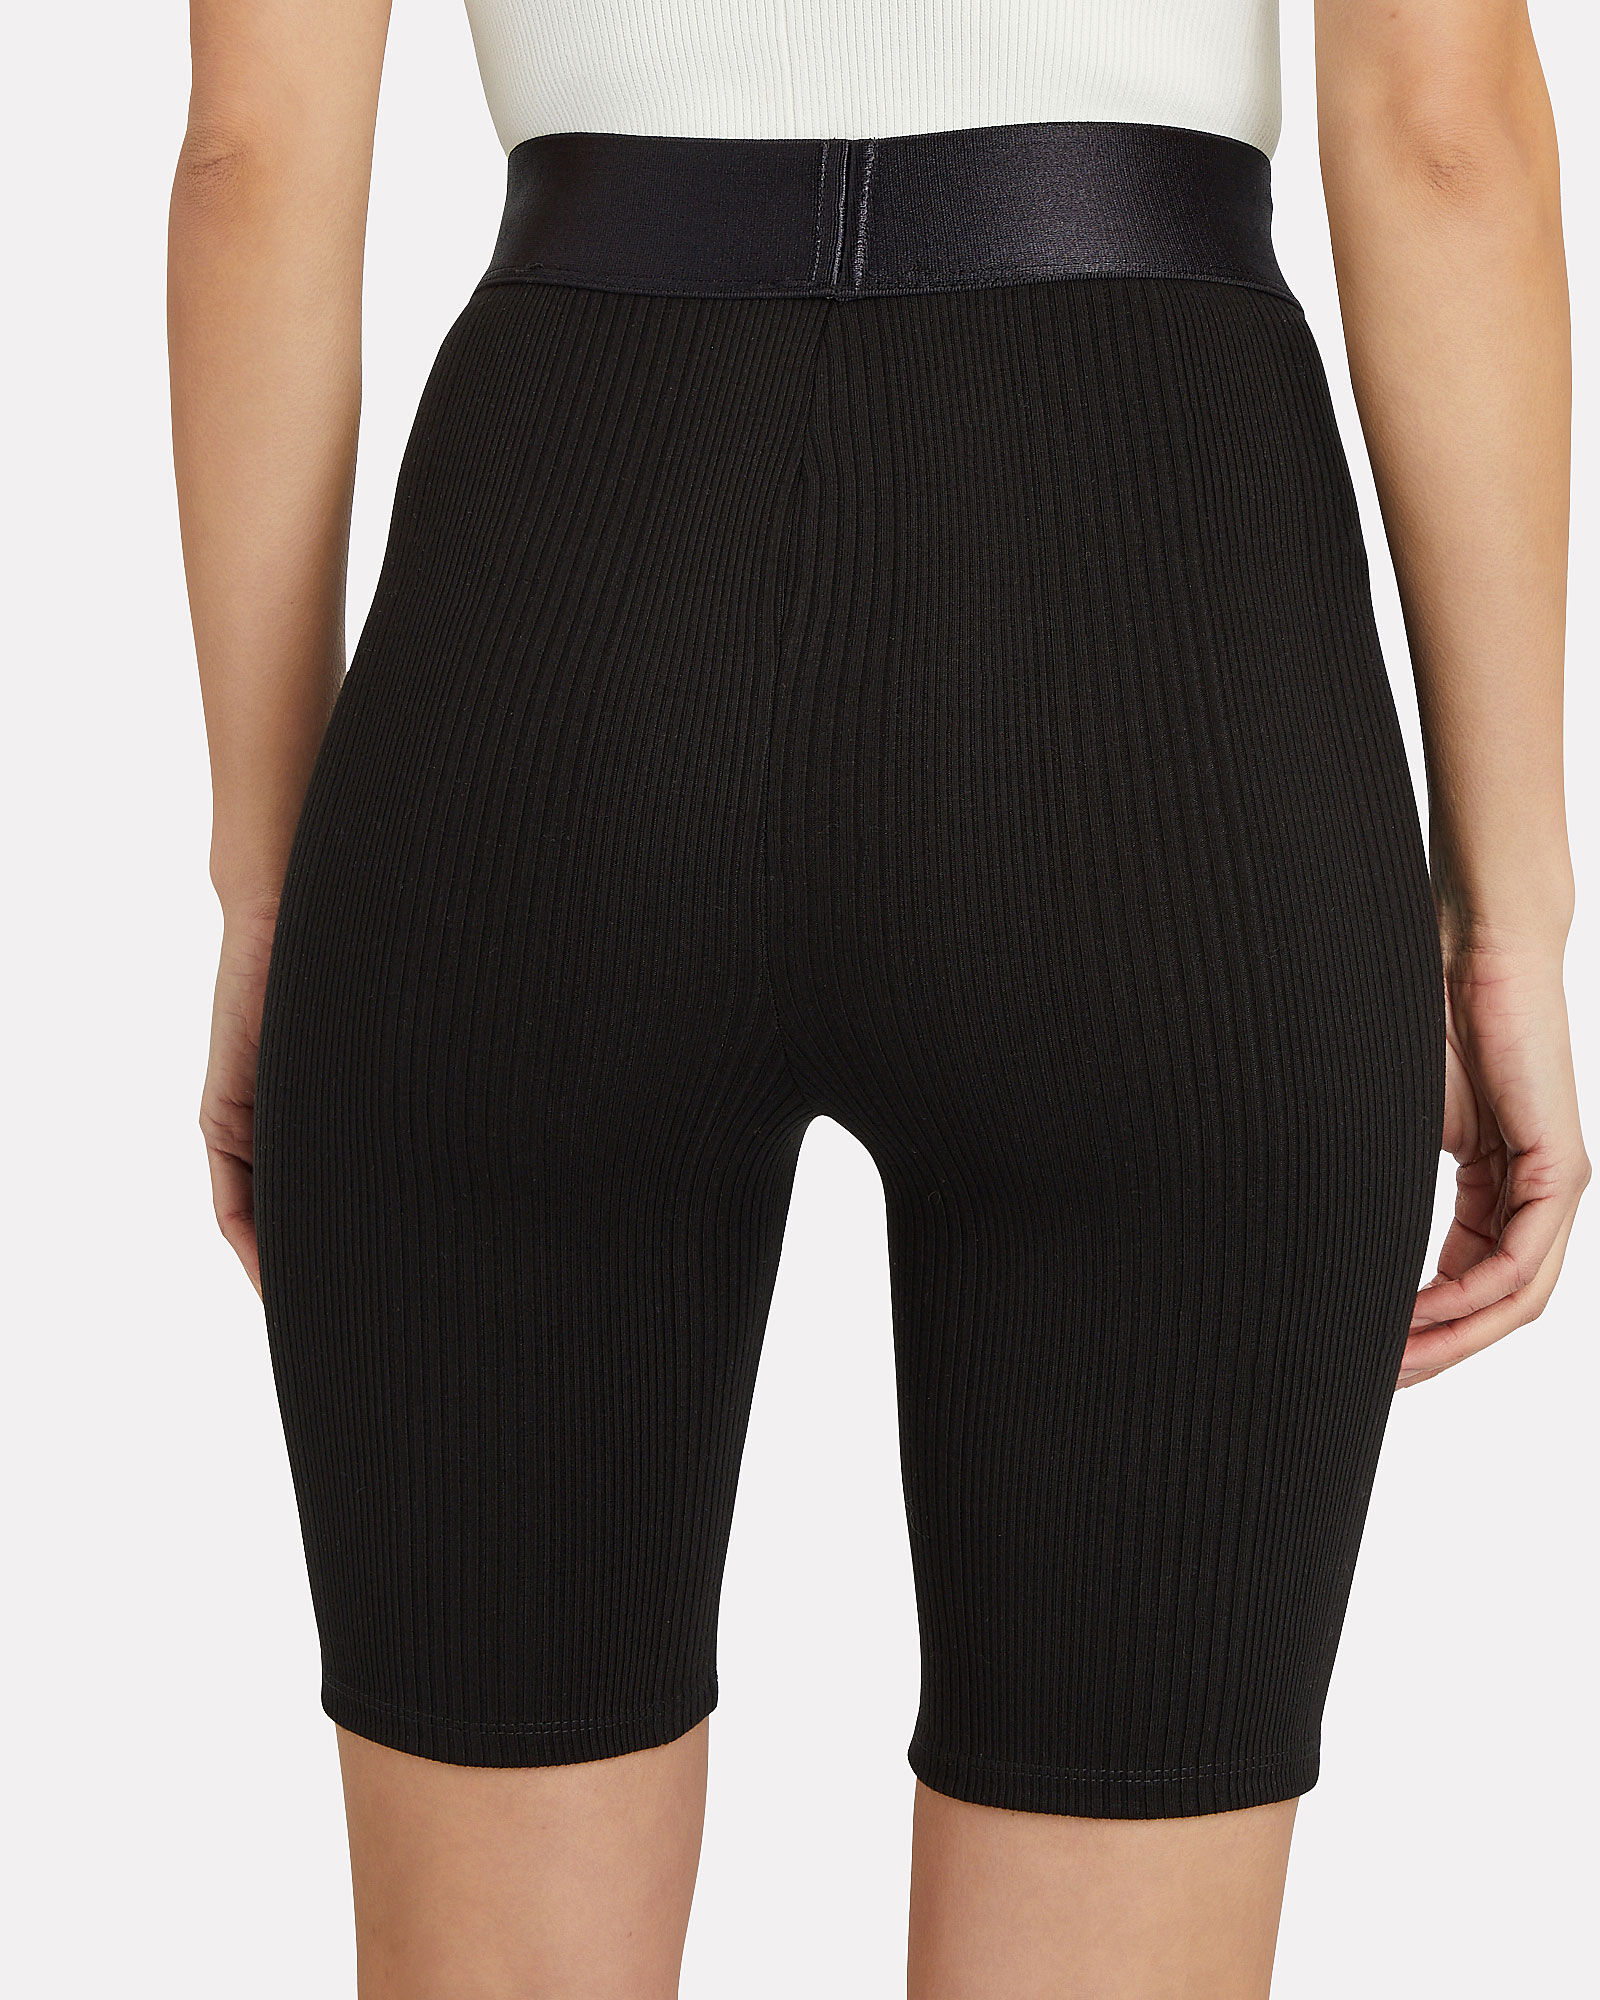 High-Rise Rib Knit Bike Shorts, BLACK, hi-res